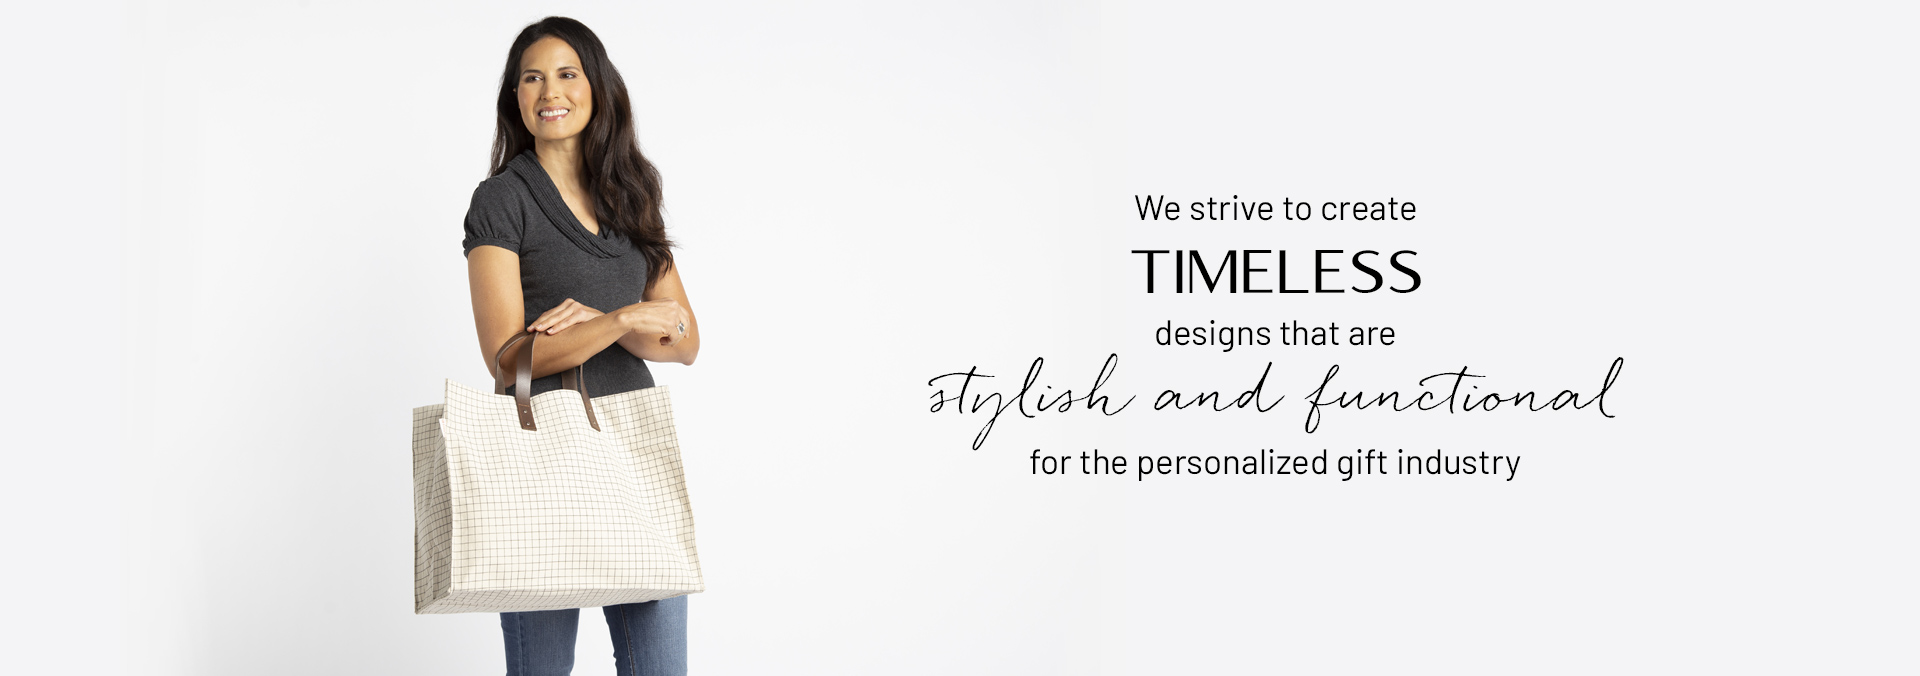 We strive to create timeless designs that are stylist and functional for the personalized gift industry